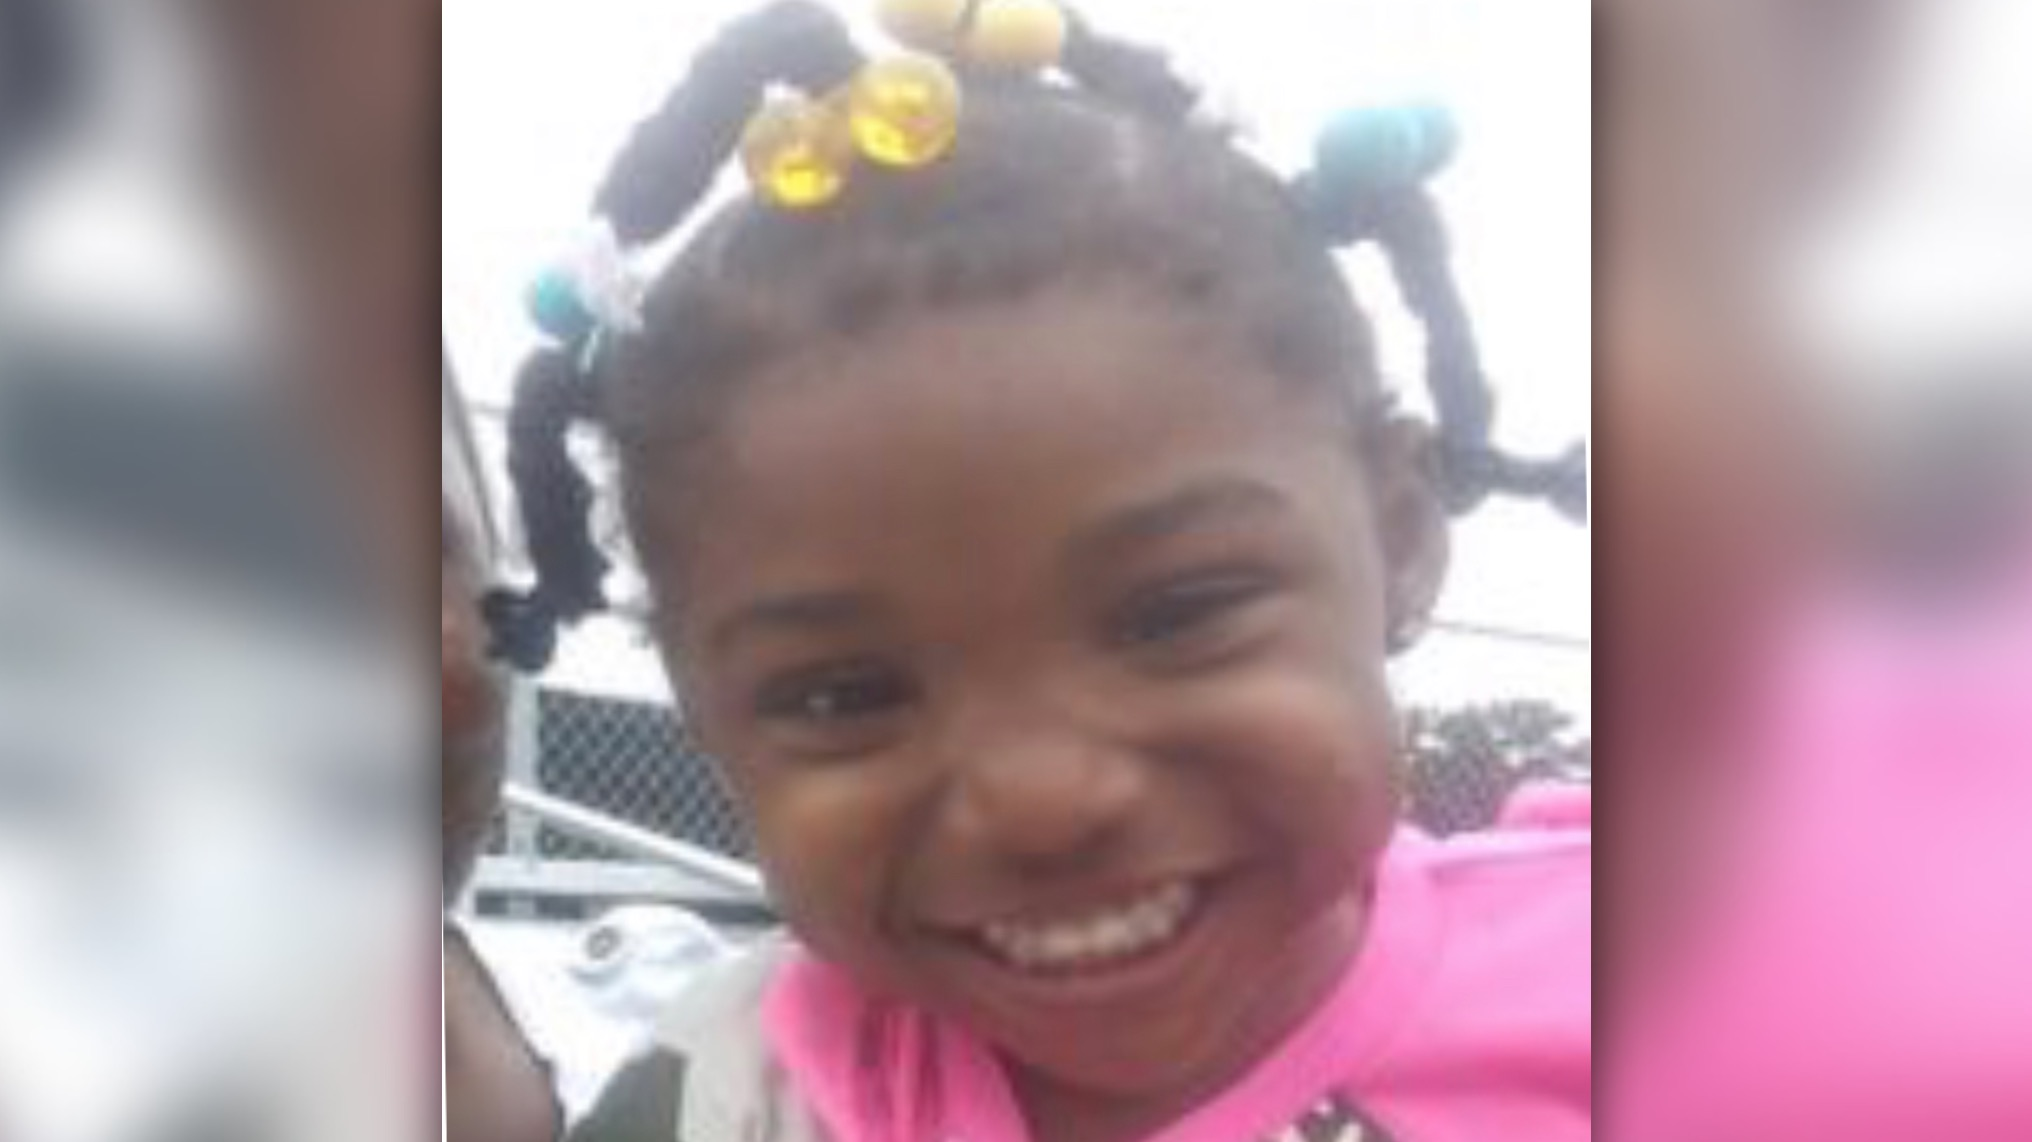 3-Year-Old Girl Kidnapped in Alabama Believed to Be In 'Extreme Danger'